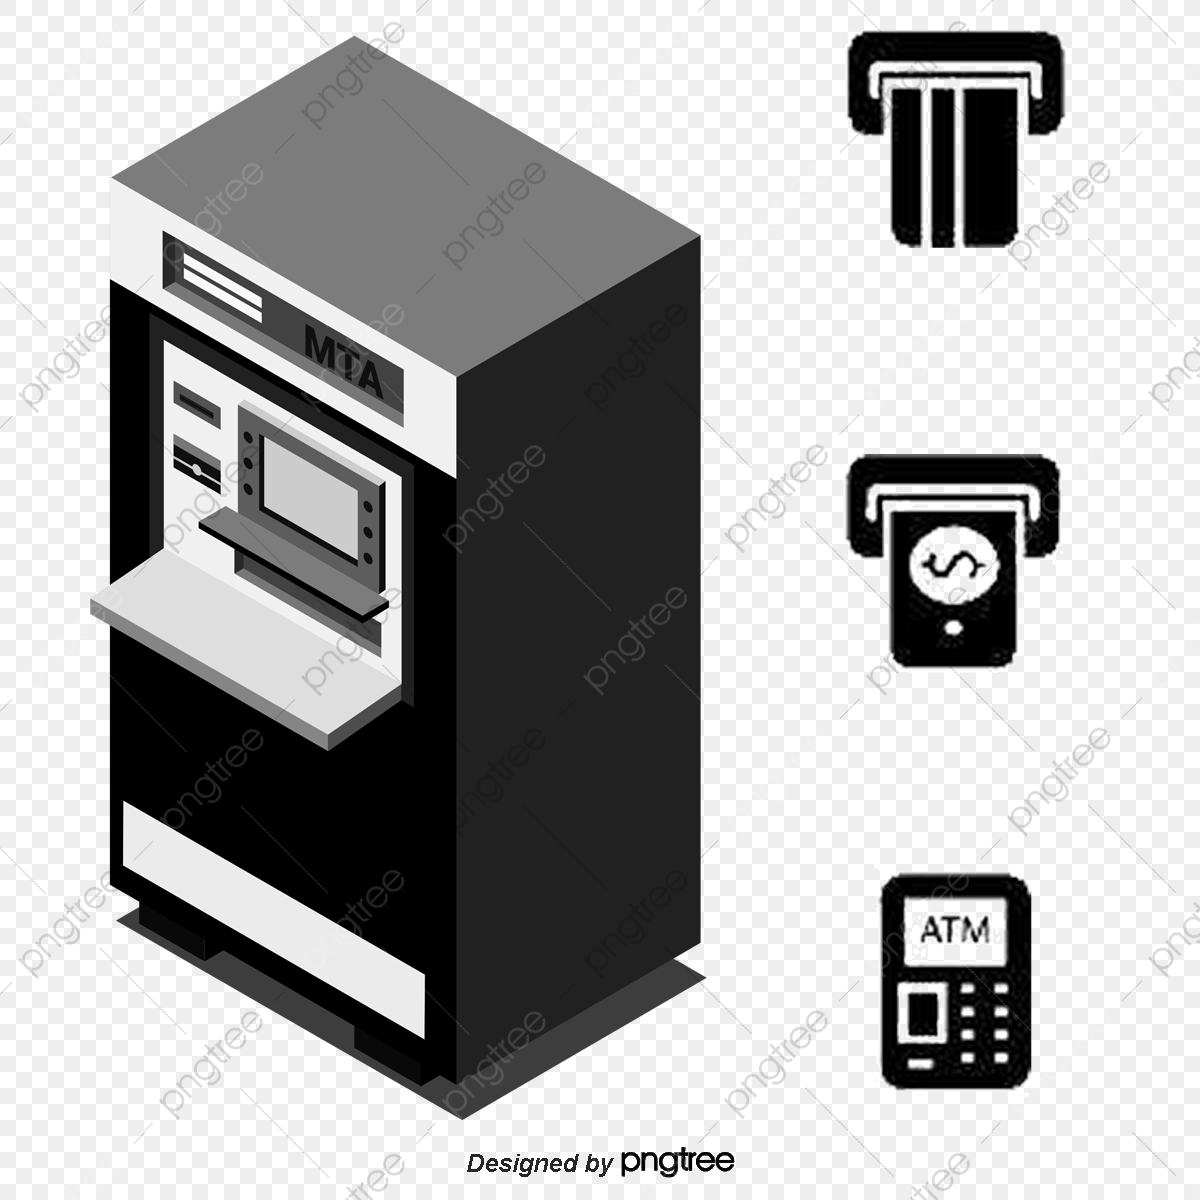 Vector Atm Withdrawals Schematic, Enter Password, Place A Card, Remove  Money PNG Transparent Clipart Image and PSD File for Free Download